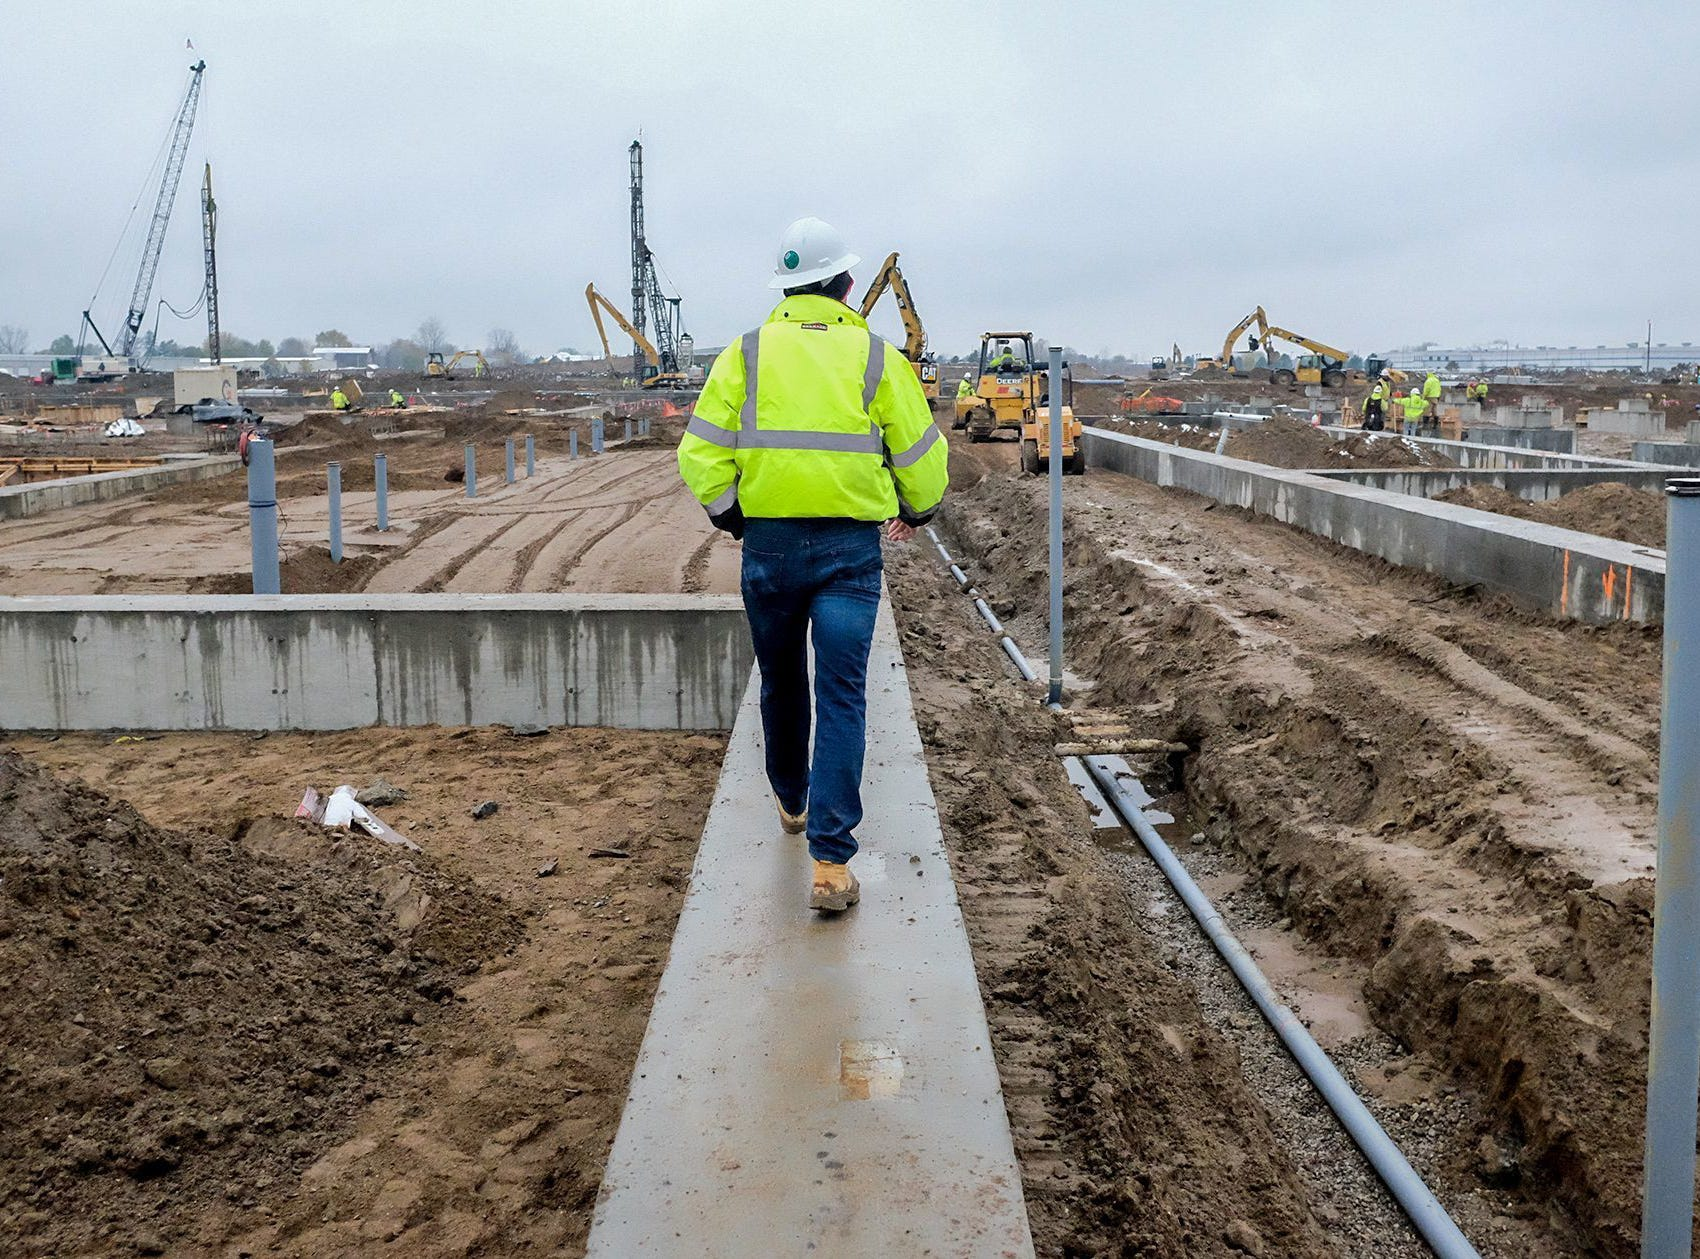 John Murphy, project manager for the new St. Johns cheese factory, walks along the cement footings as construction continues on the $555-million plant that will employ around 300 people on Friday Nov. 9, 2018.